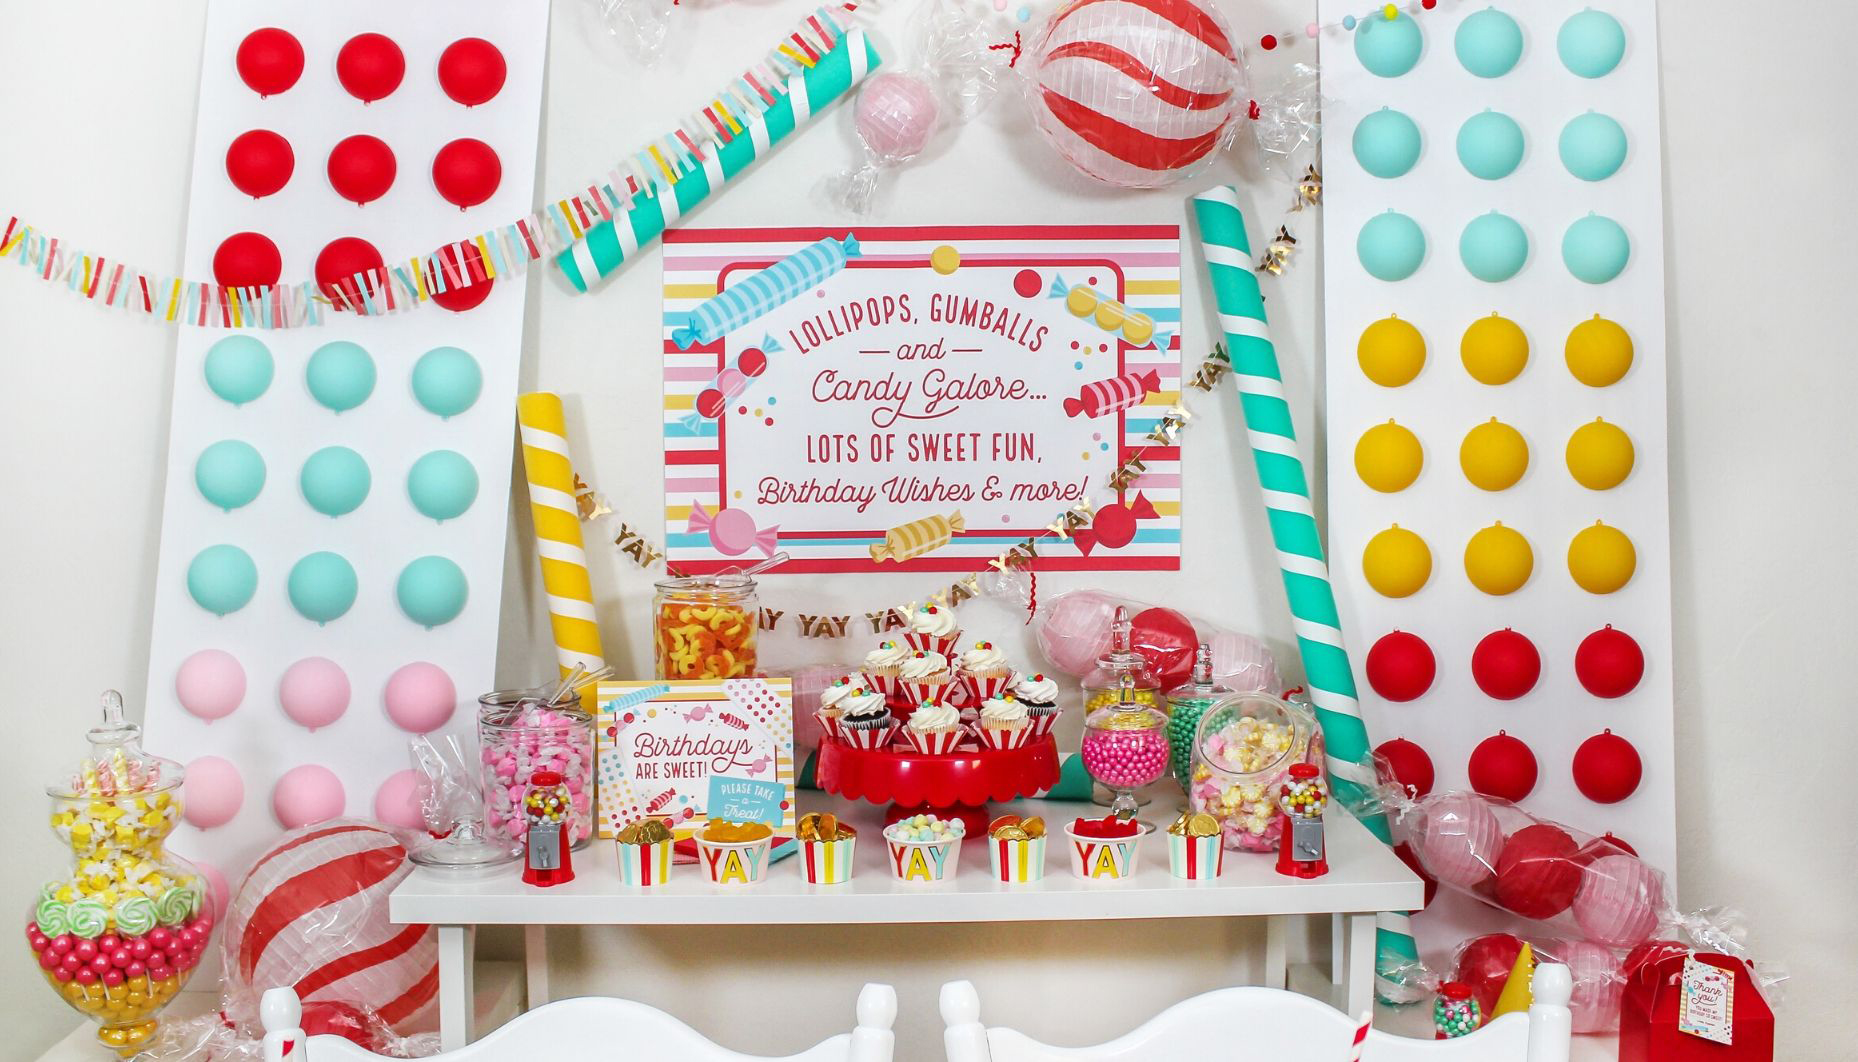 candy themed birthday party, candy party, sweetness overload, candy galore, candy, birthday party, kids birthday, Just Add Confetti, free printables, party printables, birthdays are sweet, candy charcuterie board, oversized candy backdrop, candy backdrop, giant candy buttons, huge candy button backdrop craft, DIY candy crafts, candy buttons, wrapped candies,